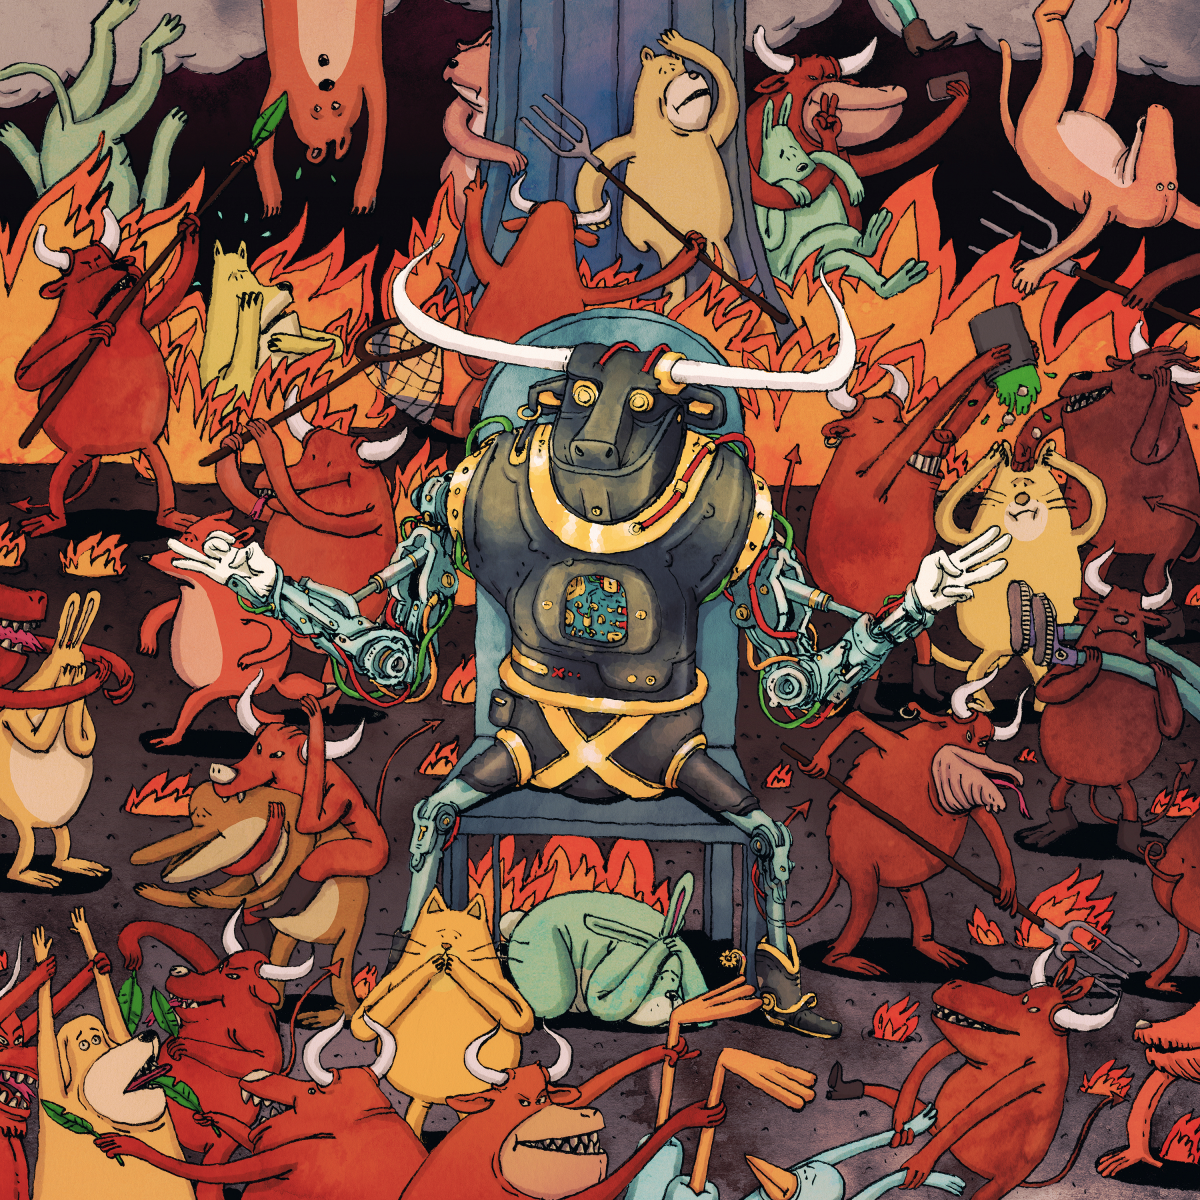 dance-gavin-dance-afterburner-ein-ohrenschmaus-album-review